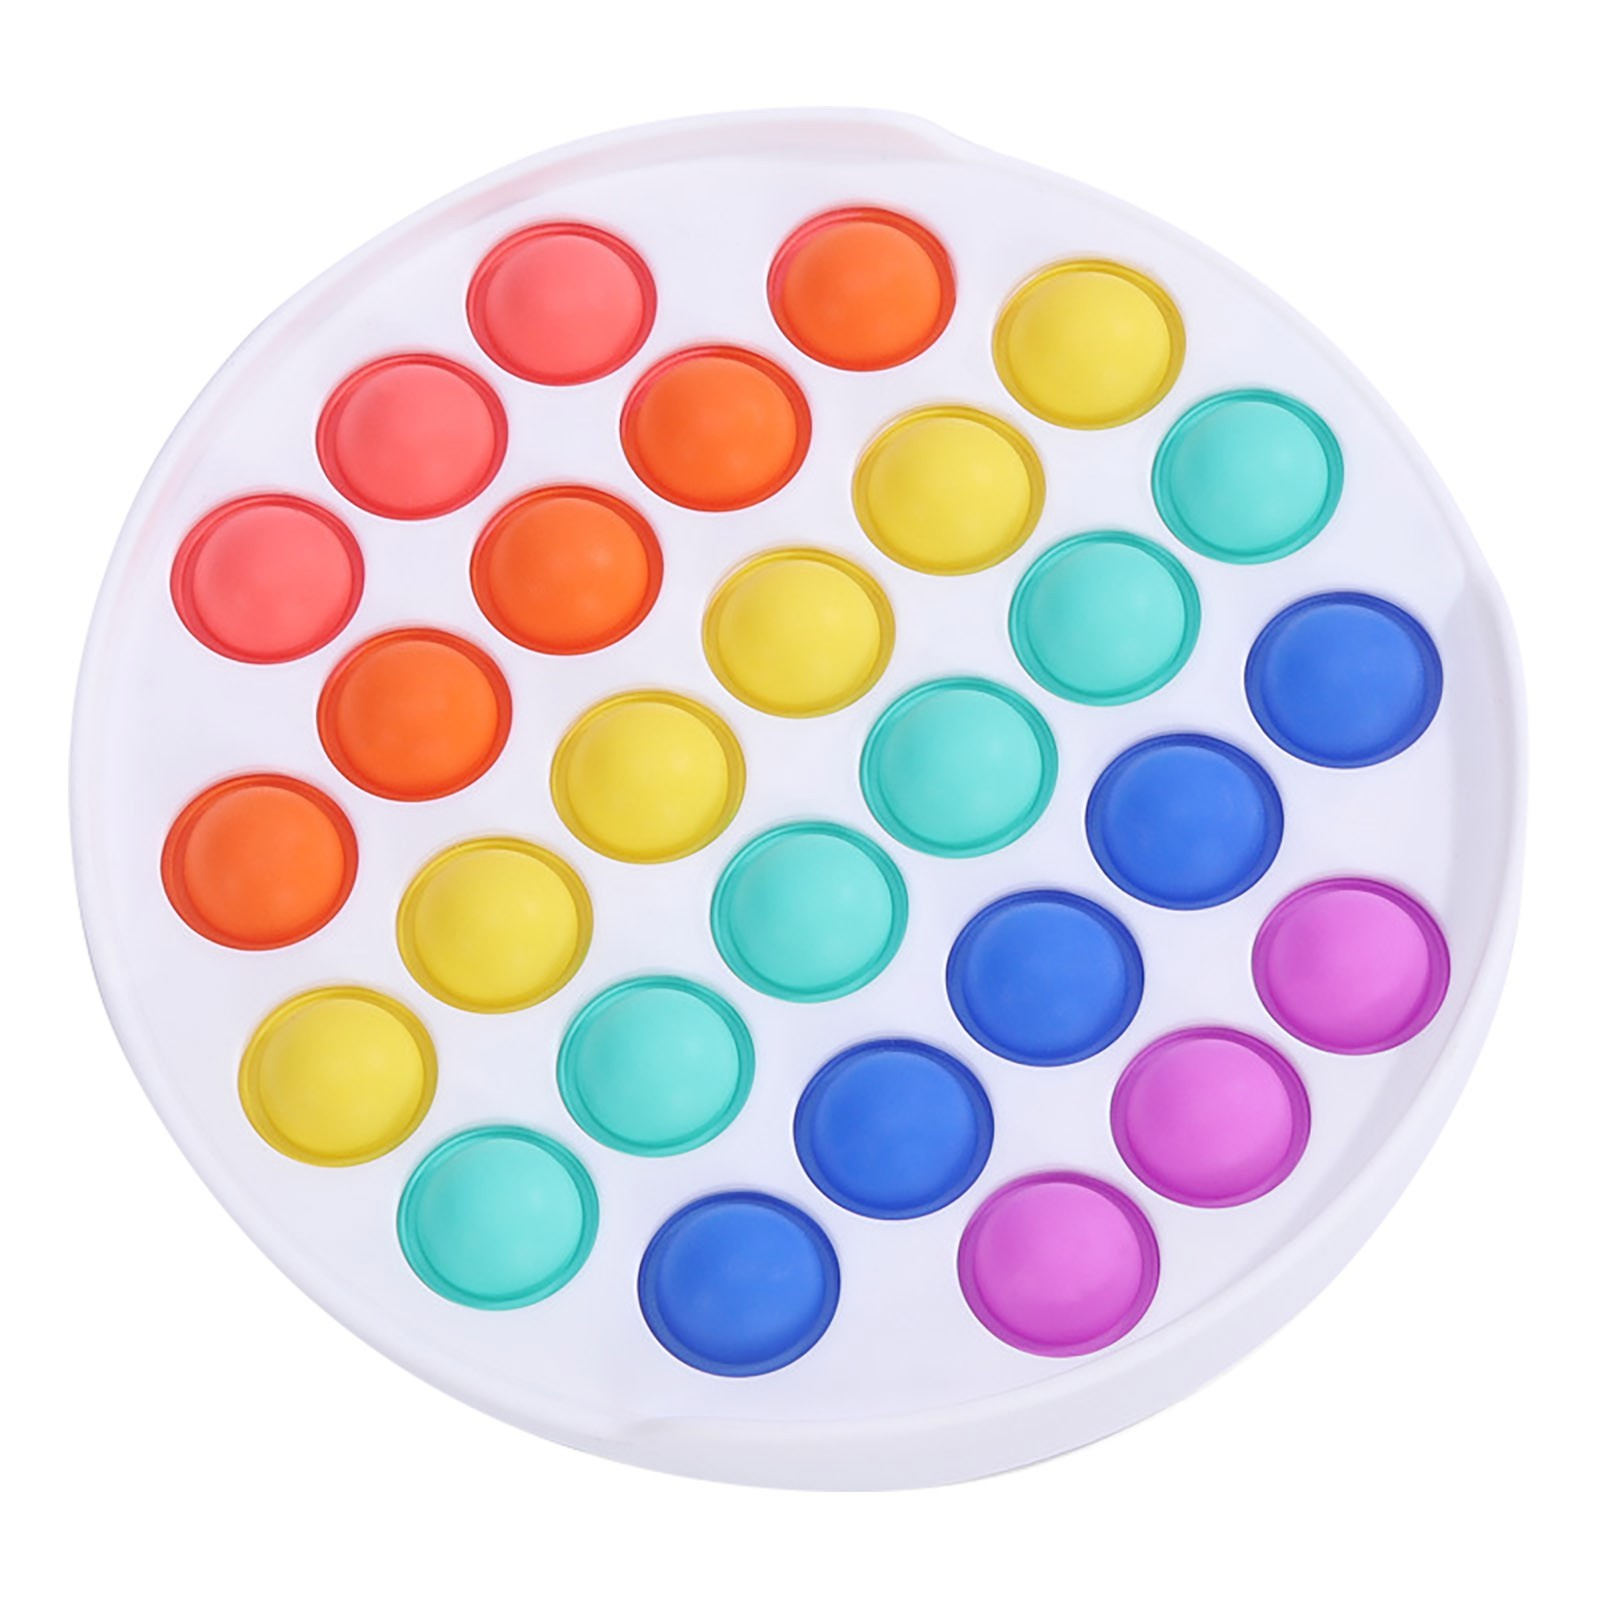 Funny Fidget Toys Simple Dimple Poppit Toy Bubble Sensory Toy For Adult Kids Stress Reliever Autism Gift ?????????? ???? Drop img4